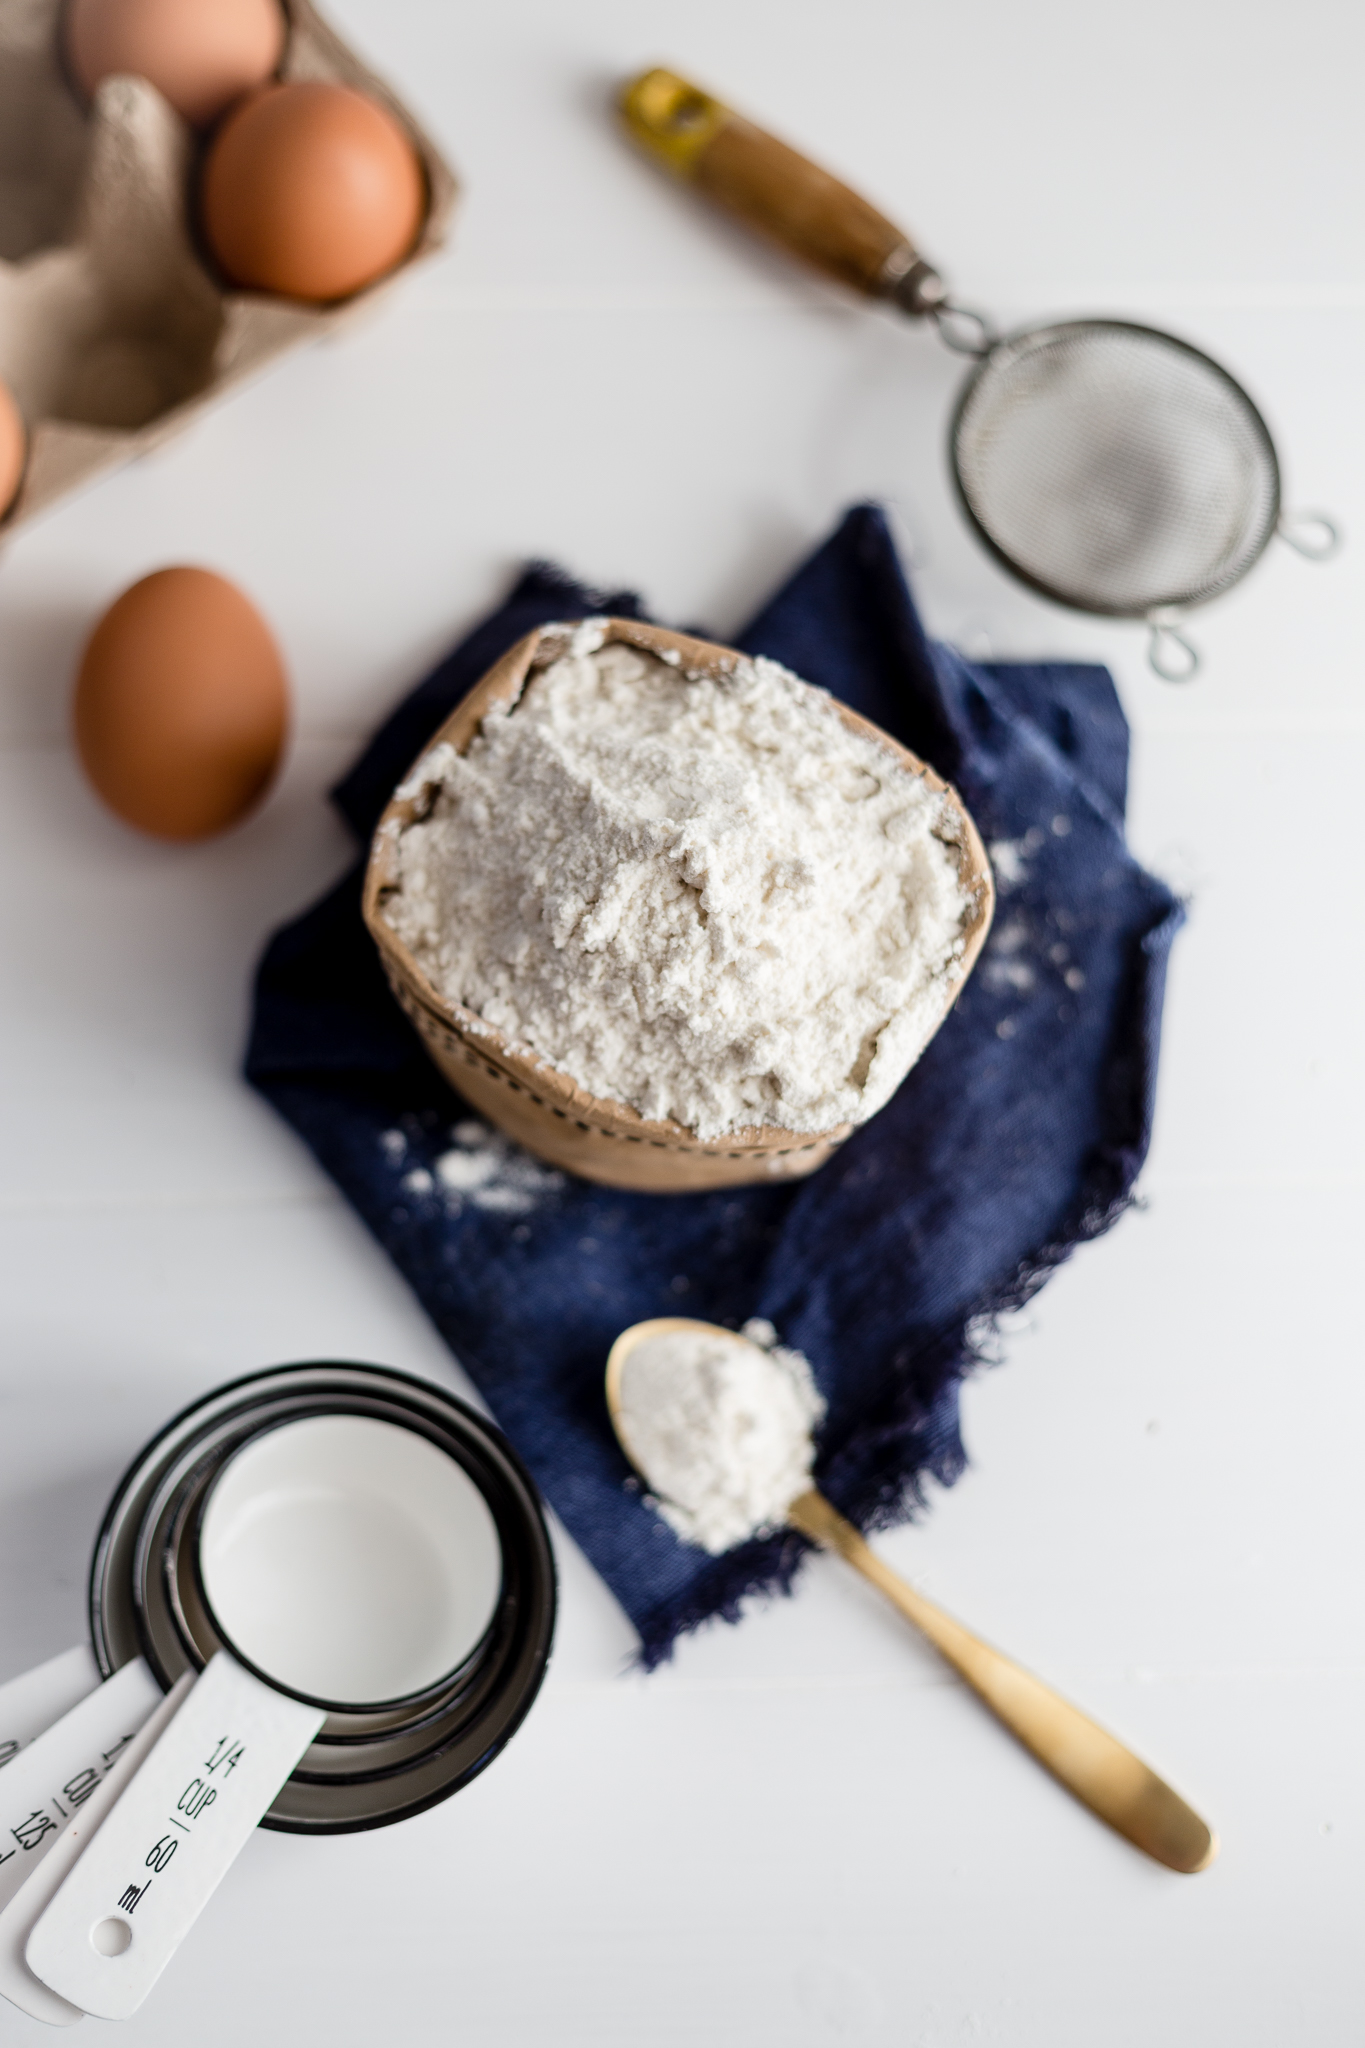 margaretriver-perth-food-photographer-stocked-foods-gluten-free-flour-mix-1